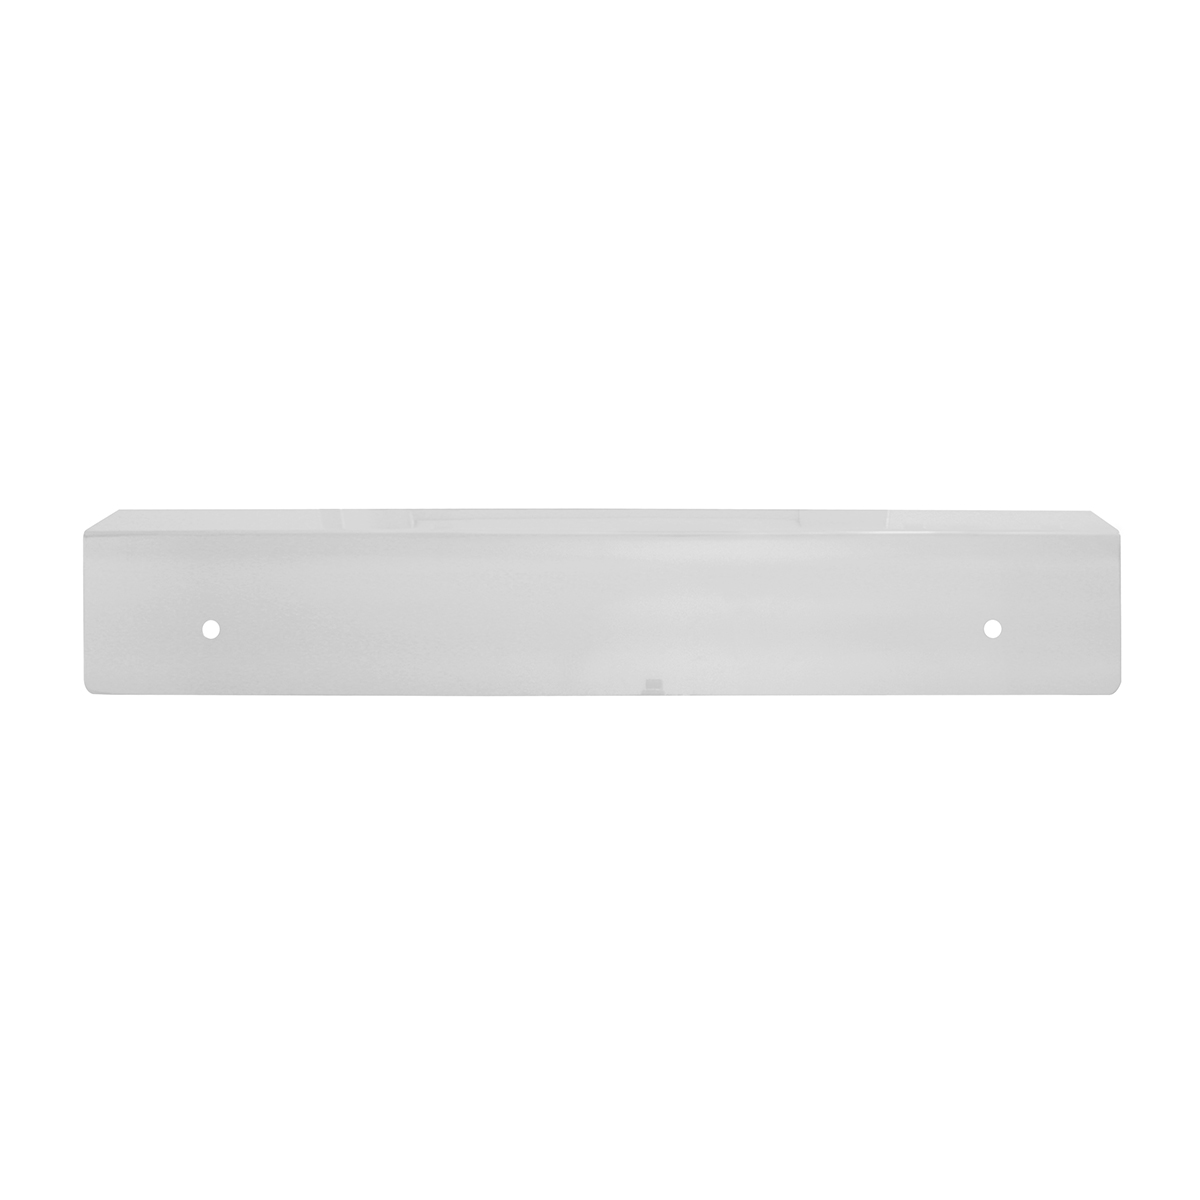 93940 Stainless Steel Rear Frame Cover